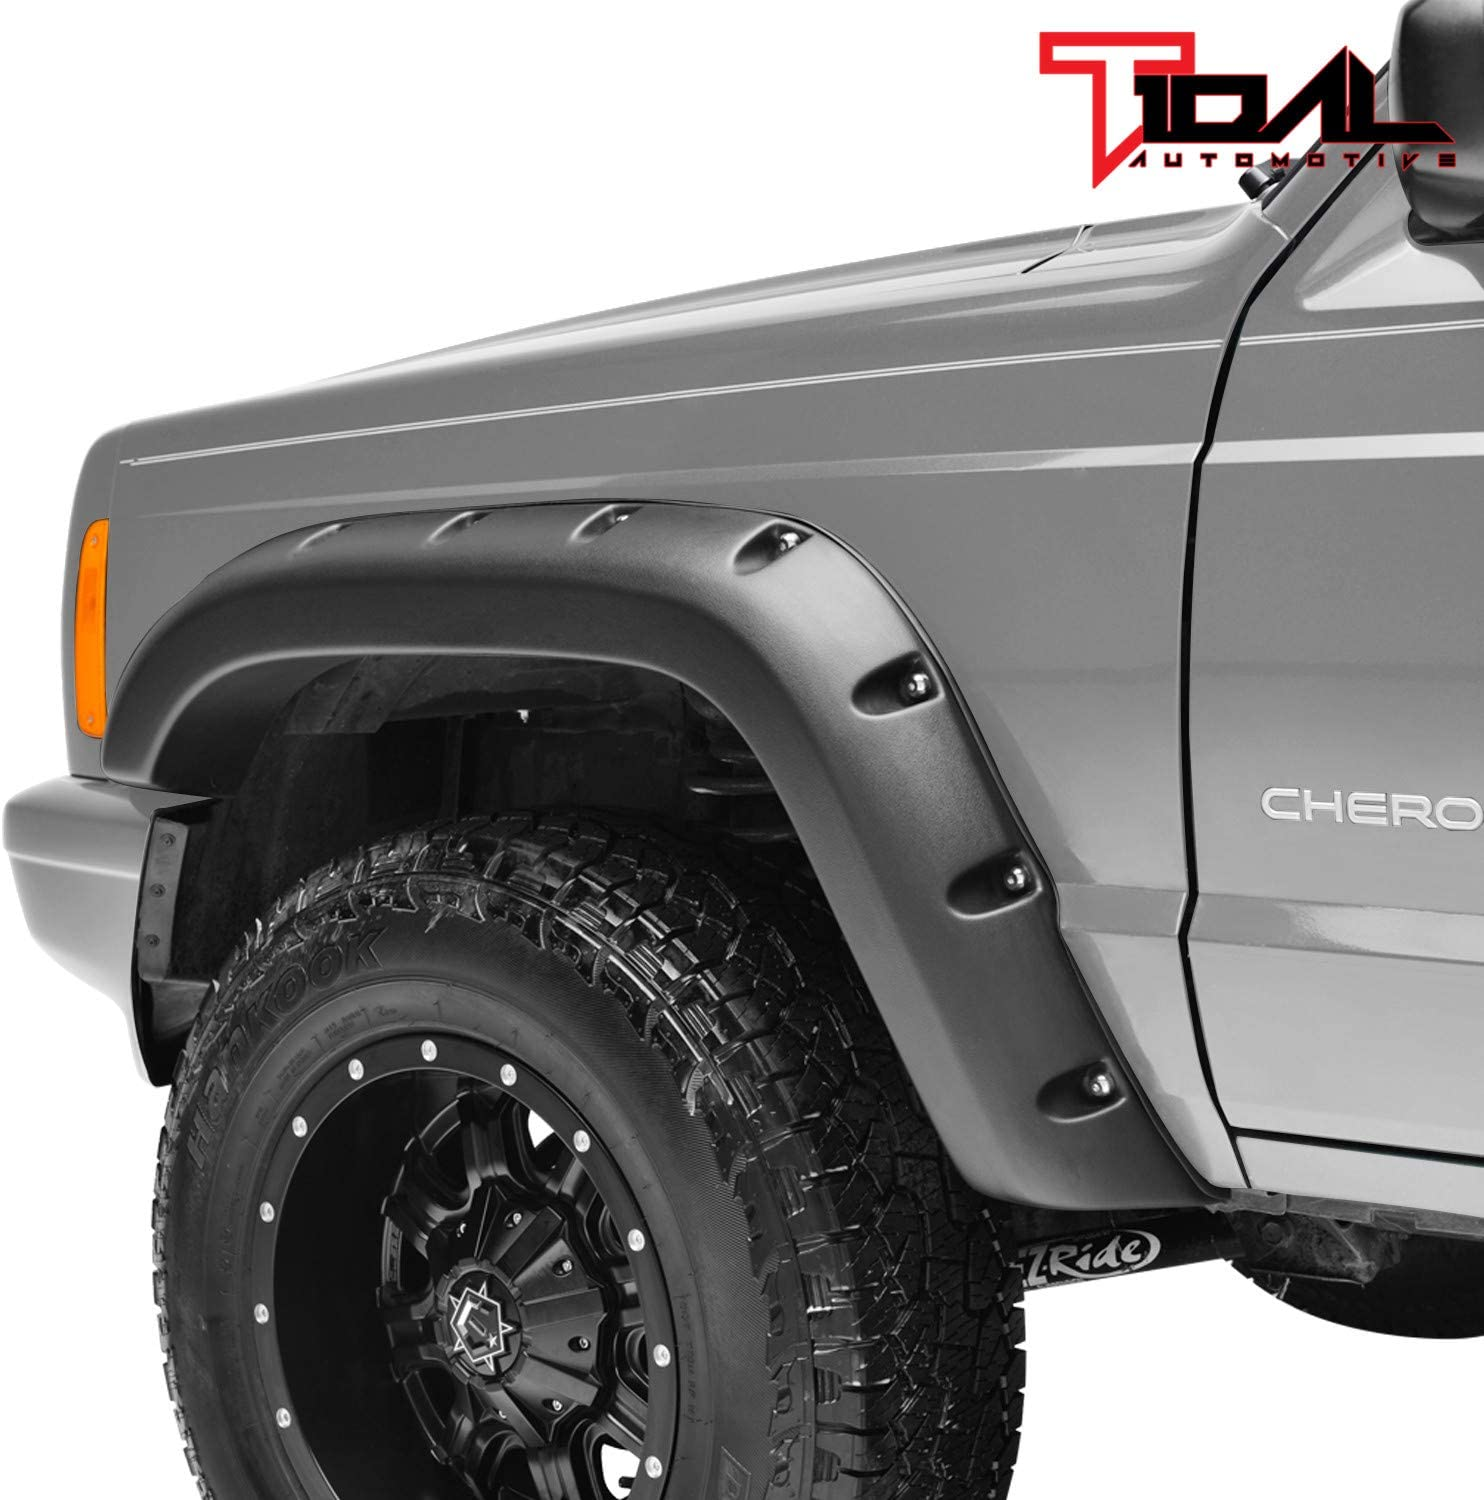 Tidal Fender Flares Rivet Style Bolt on Pocket for 84-01 Cherokee XJ